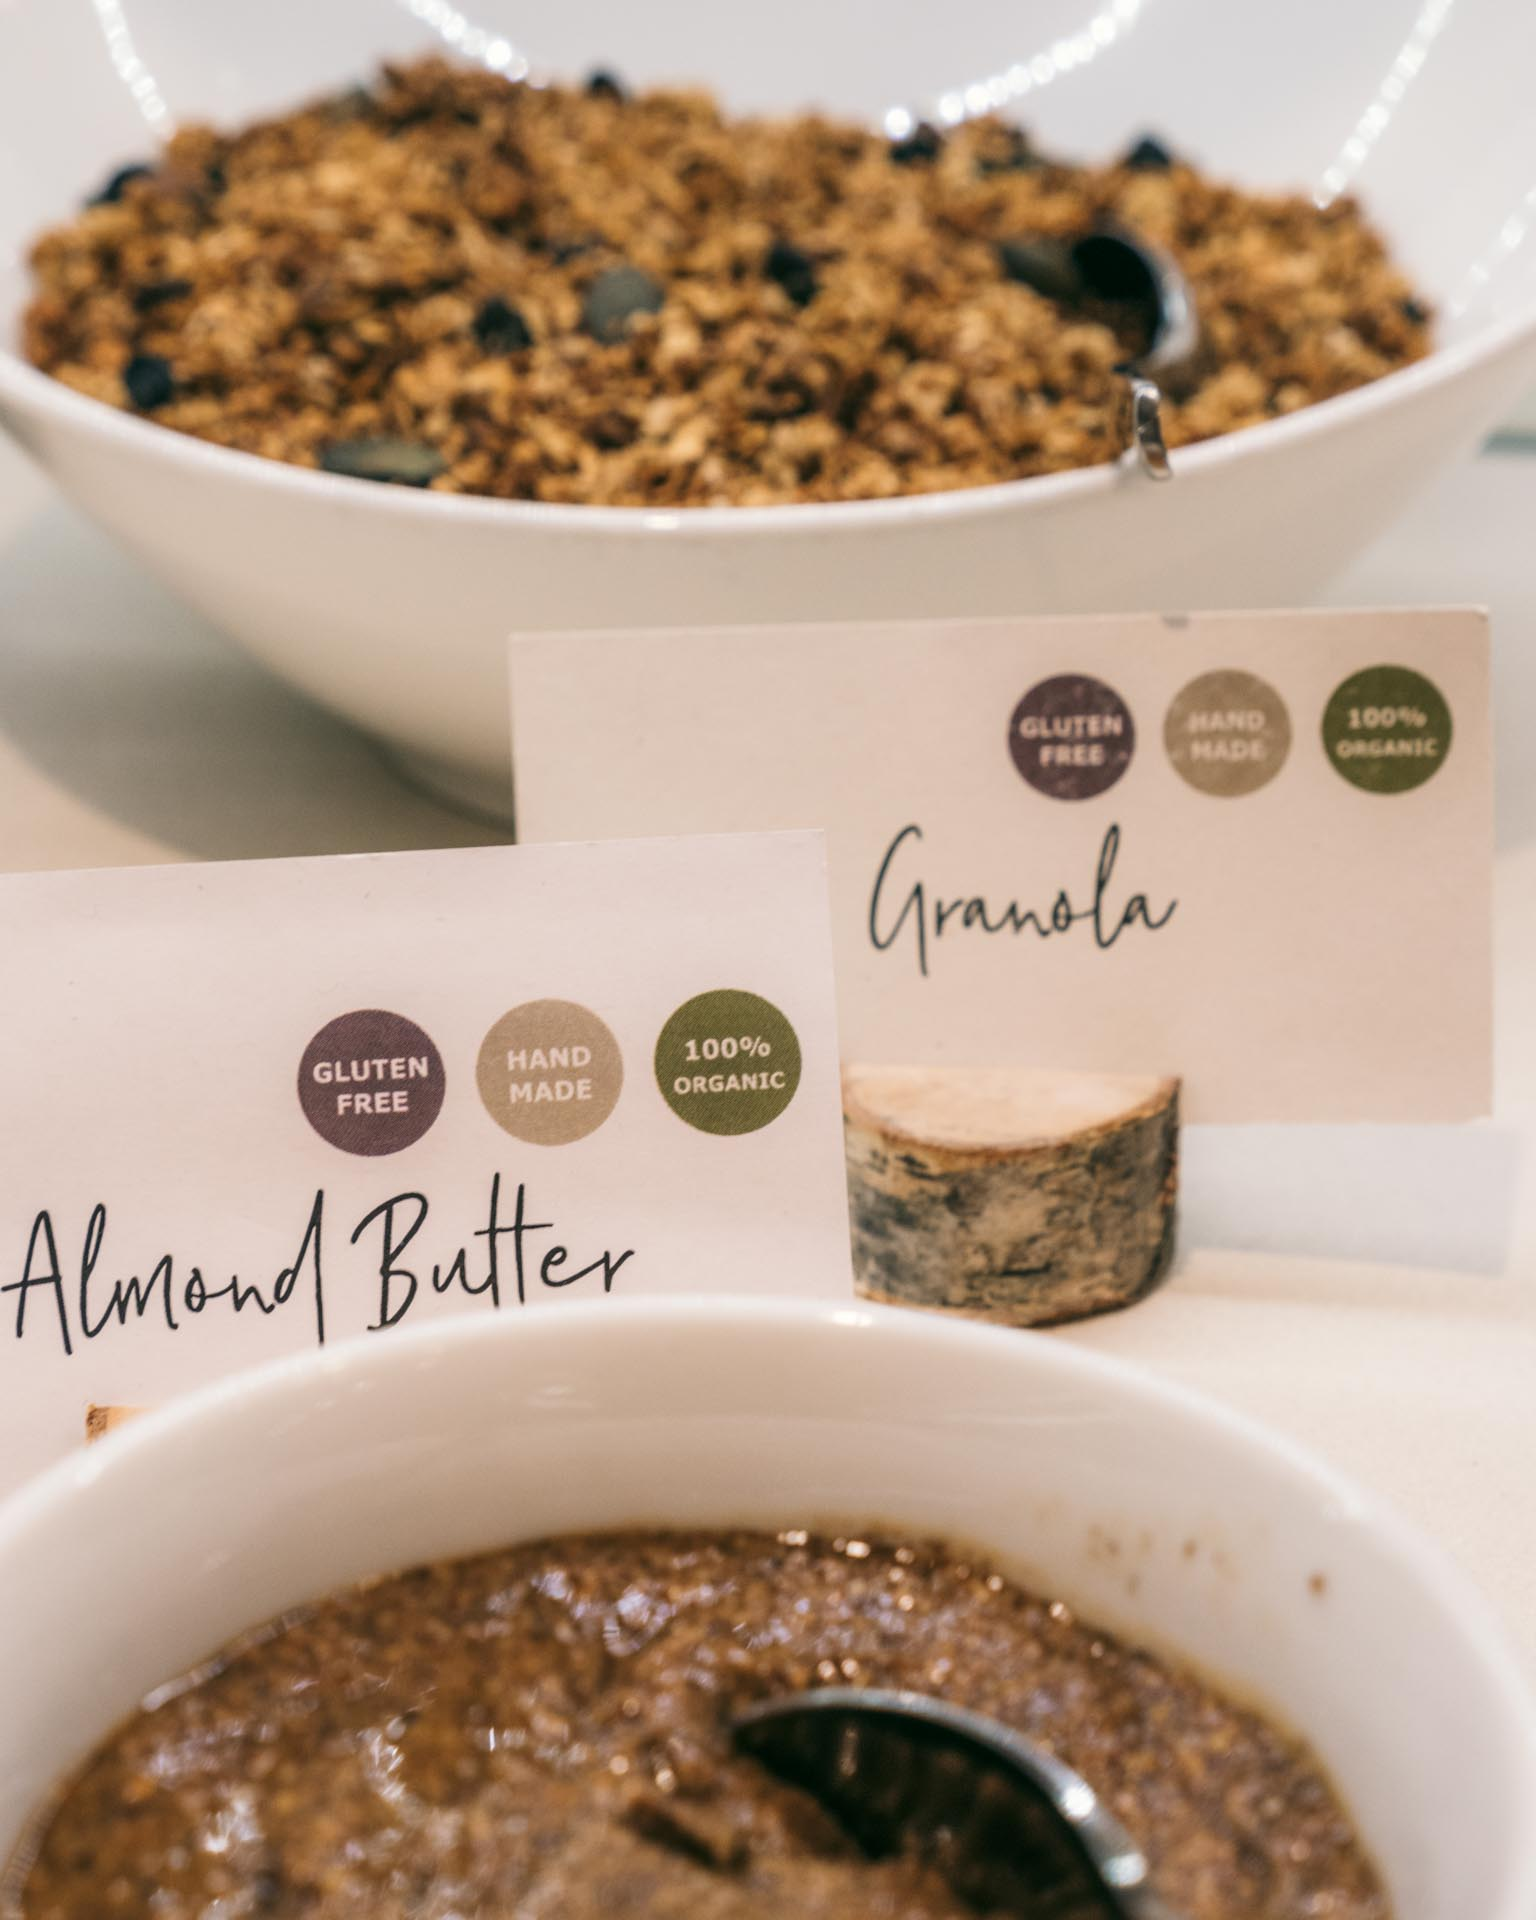 Granola and almond butter